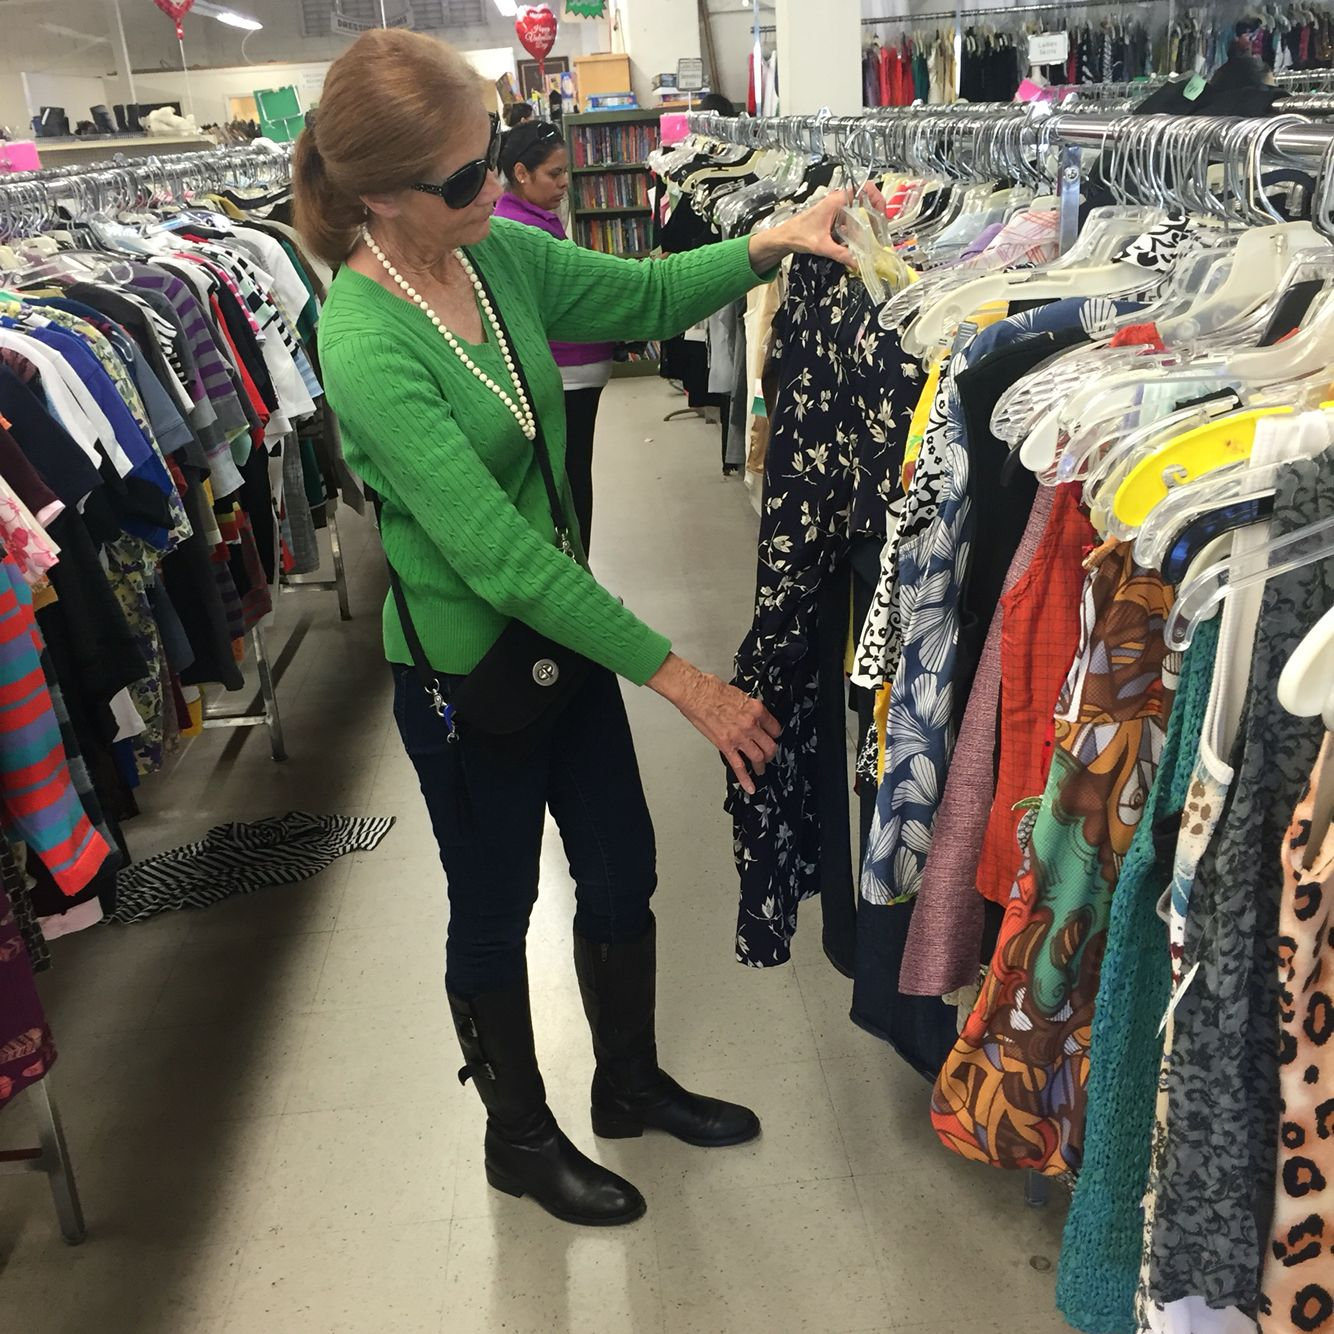 A Great Day At The Thrift Center In San Carlos Ca One Of The Best Stores For Thrifting In The Sf Bay Area Finding De Yellow Tees Thrifting Amazing Shopping